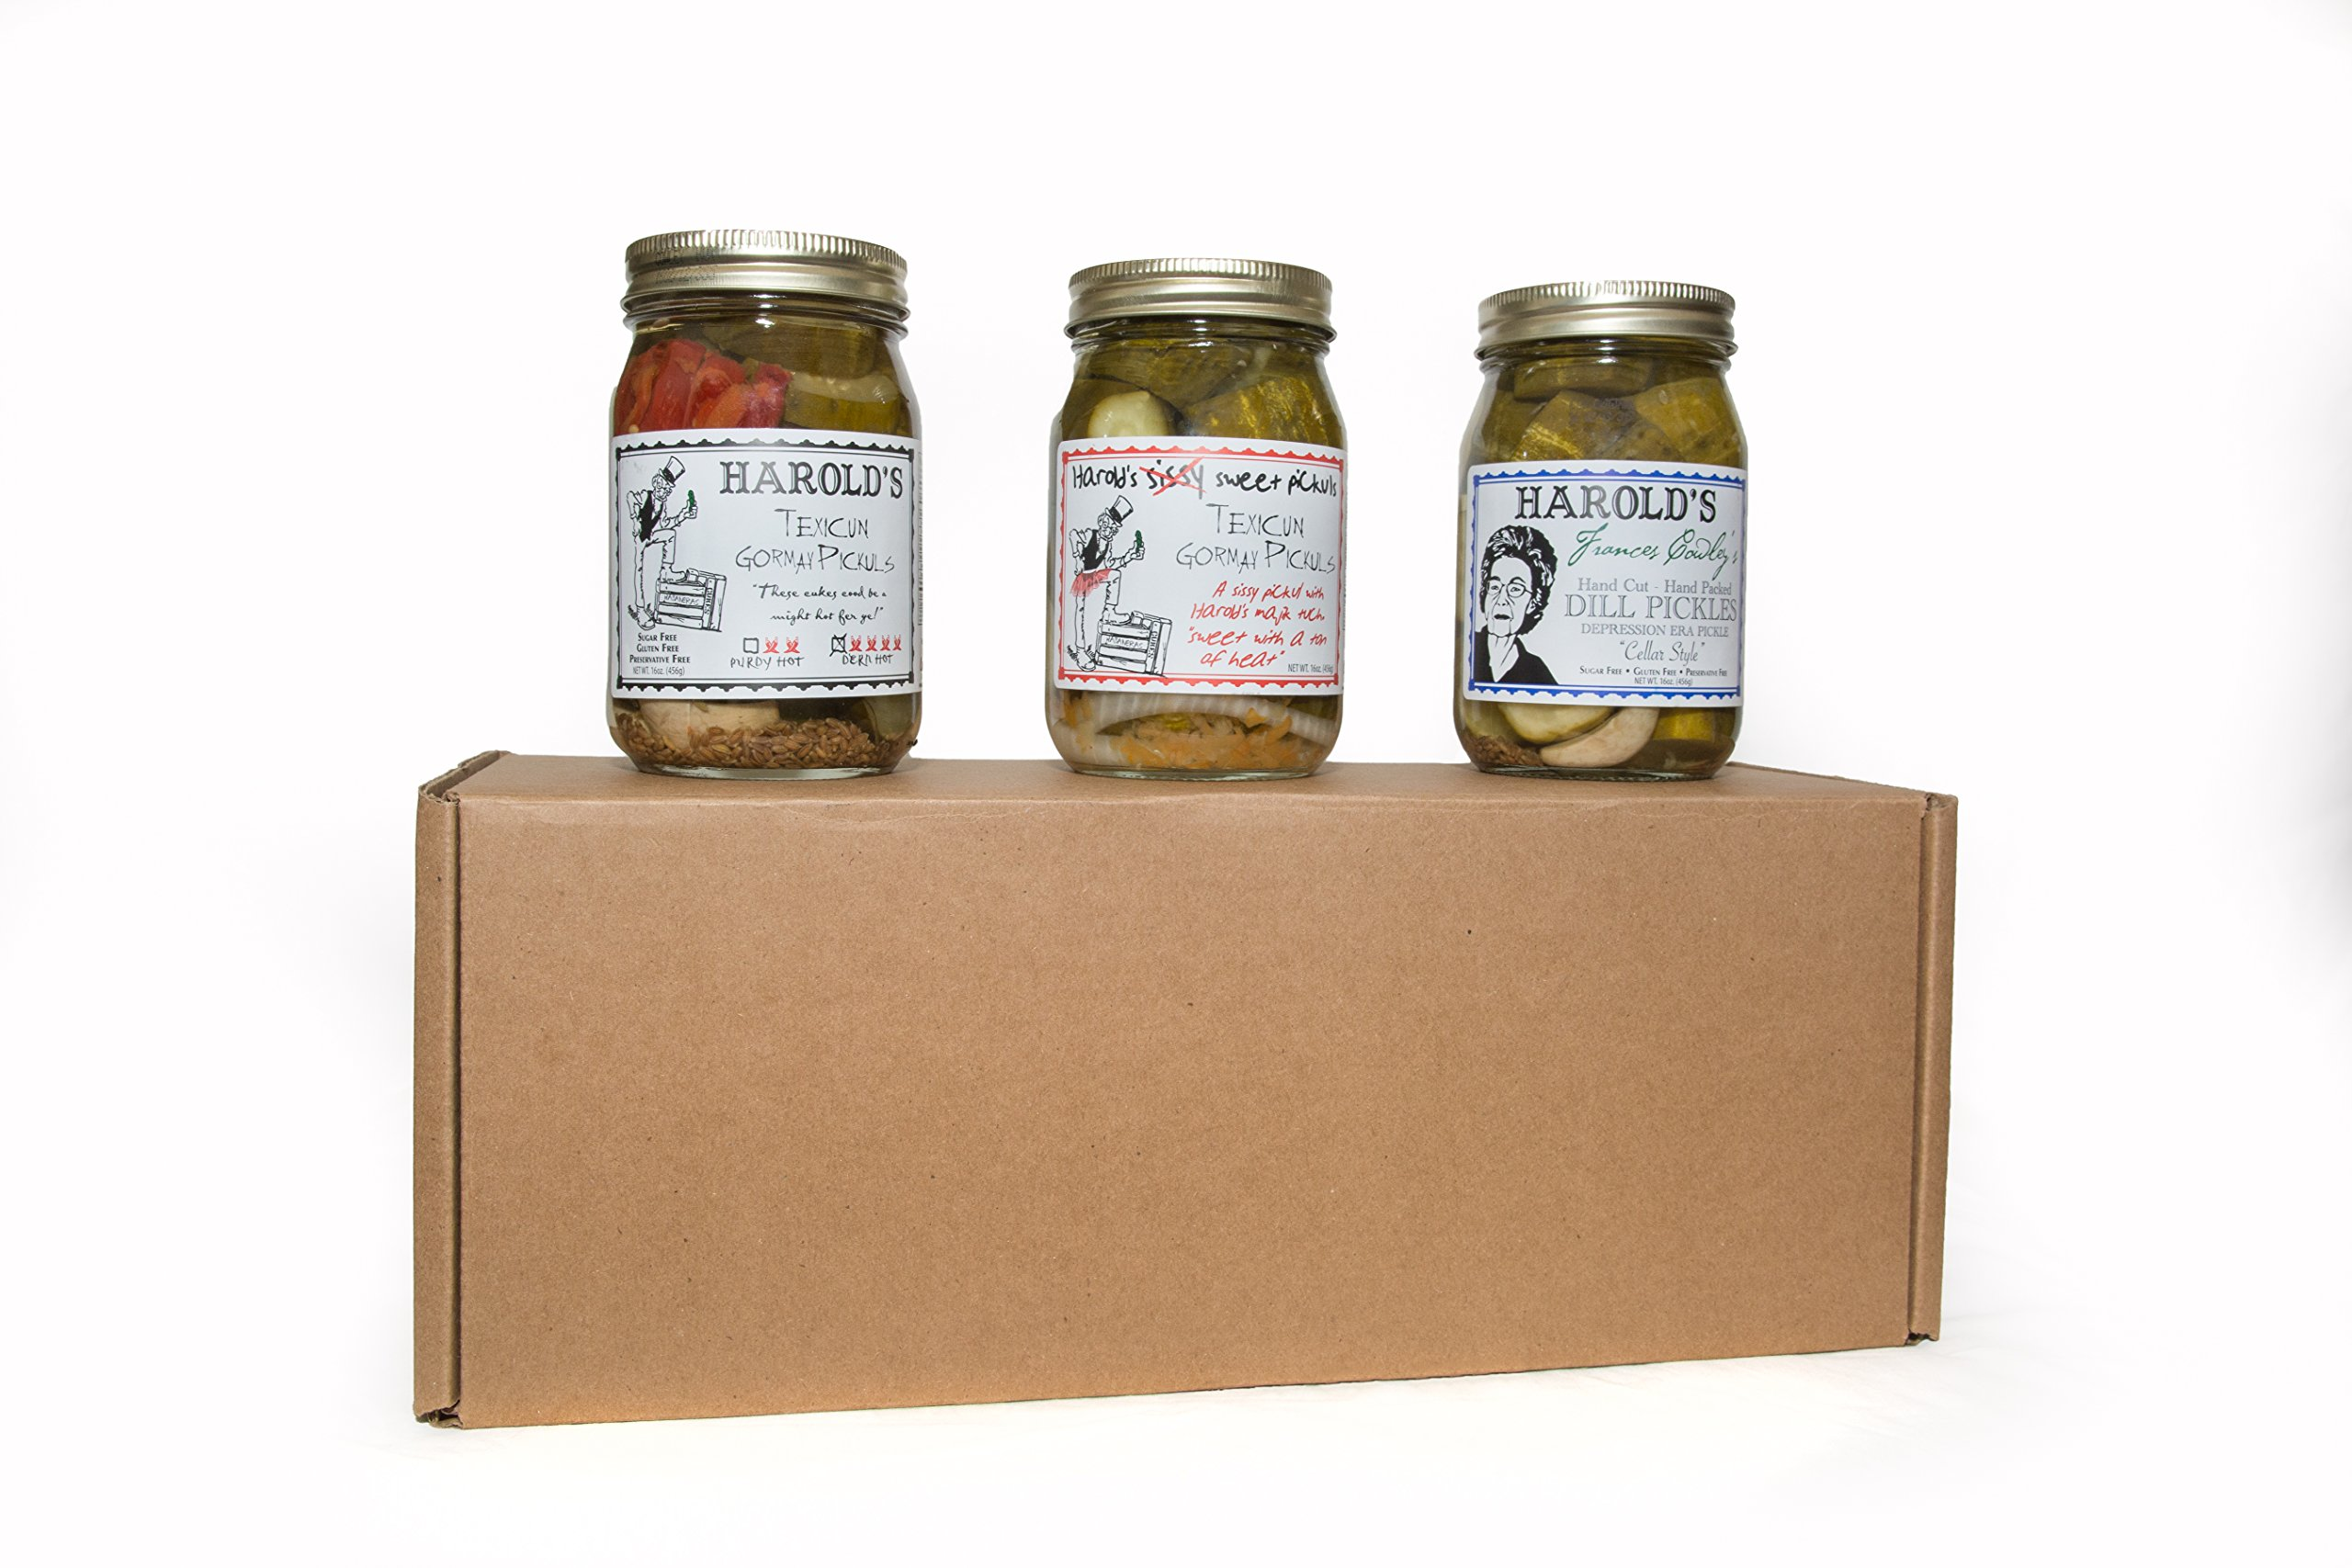 Gourmet Pickle Gift Pack 1 pint each Frances Cowley, Sissy Sweet and Purdy Hot